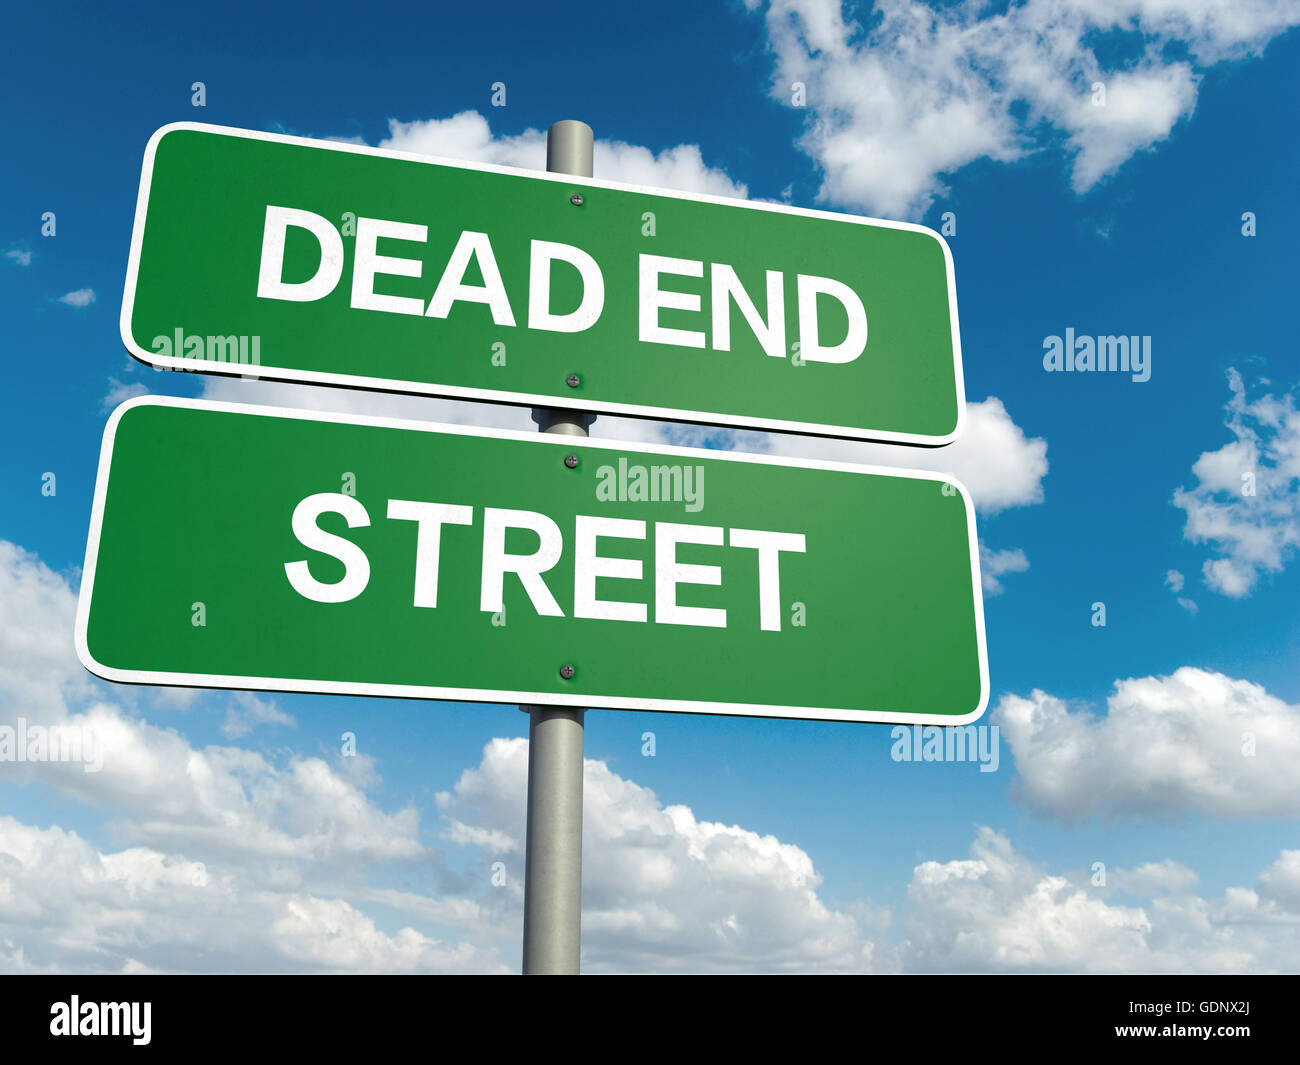 A road sign with dead end street words on sky background - Stock Image